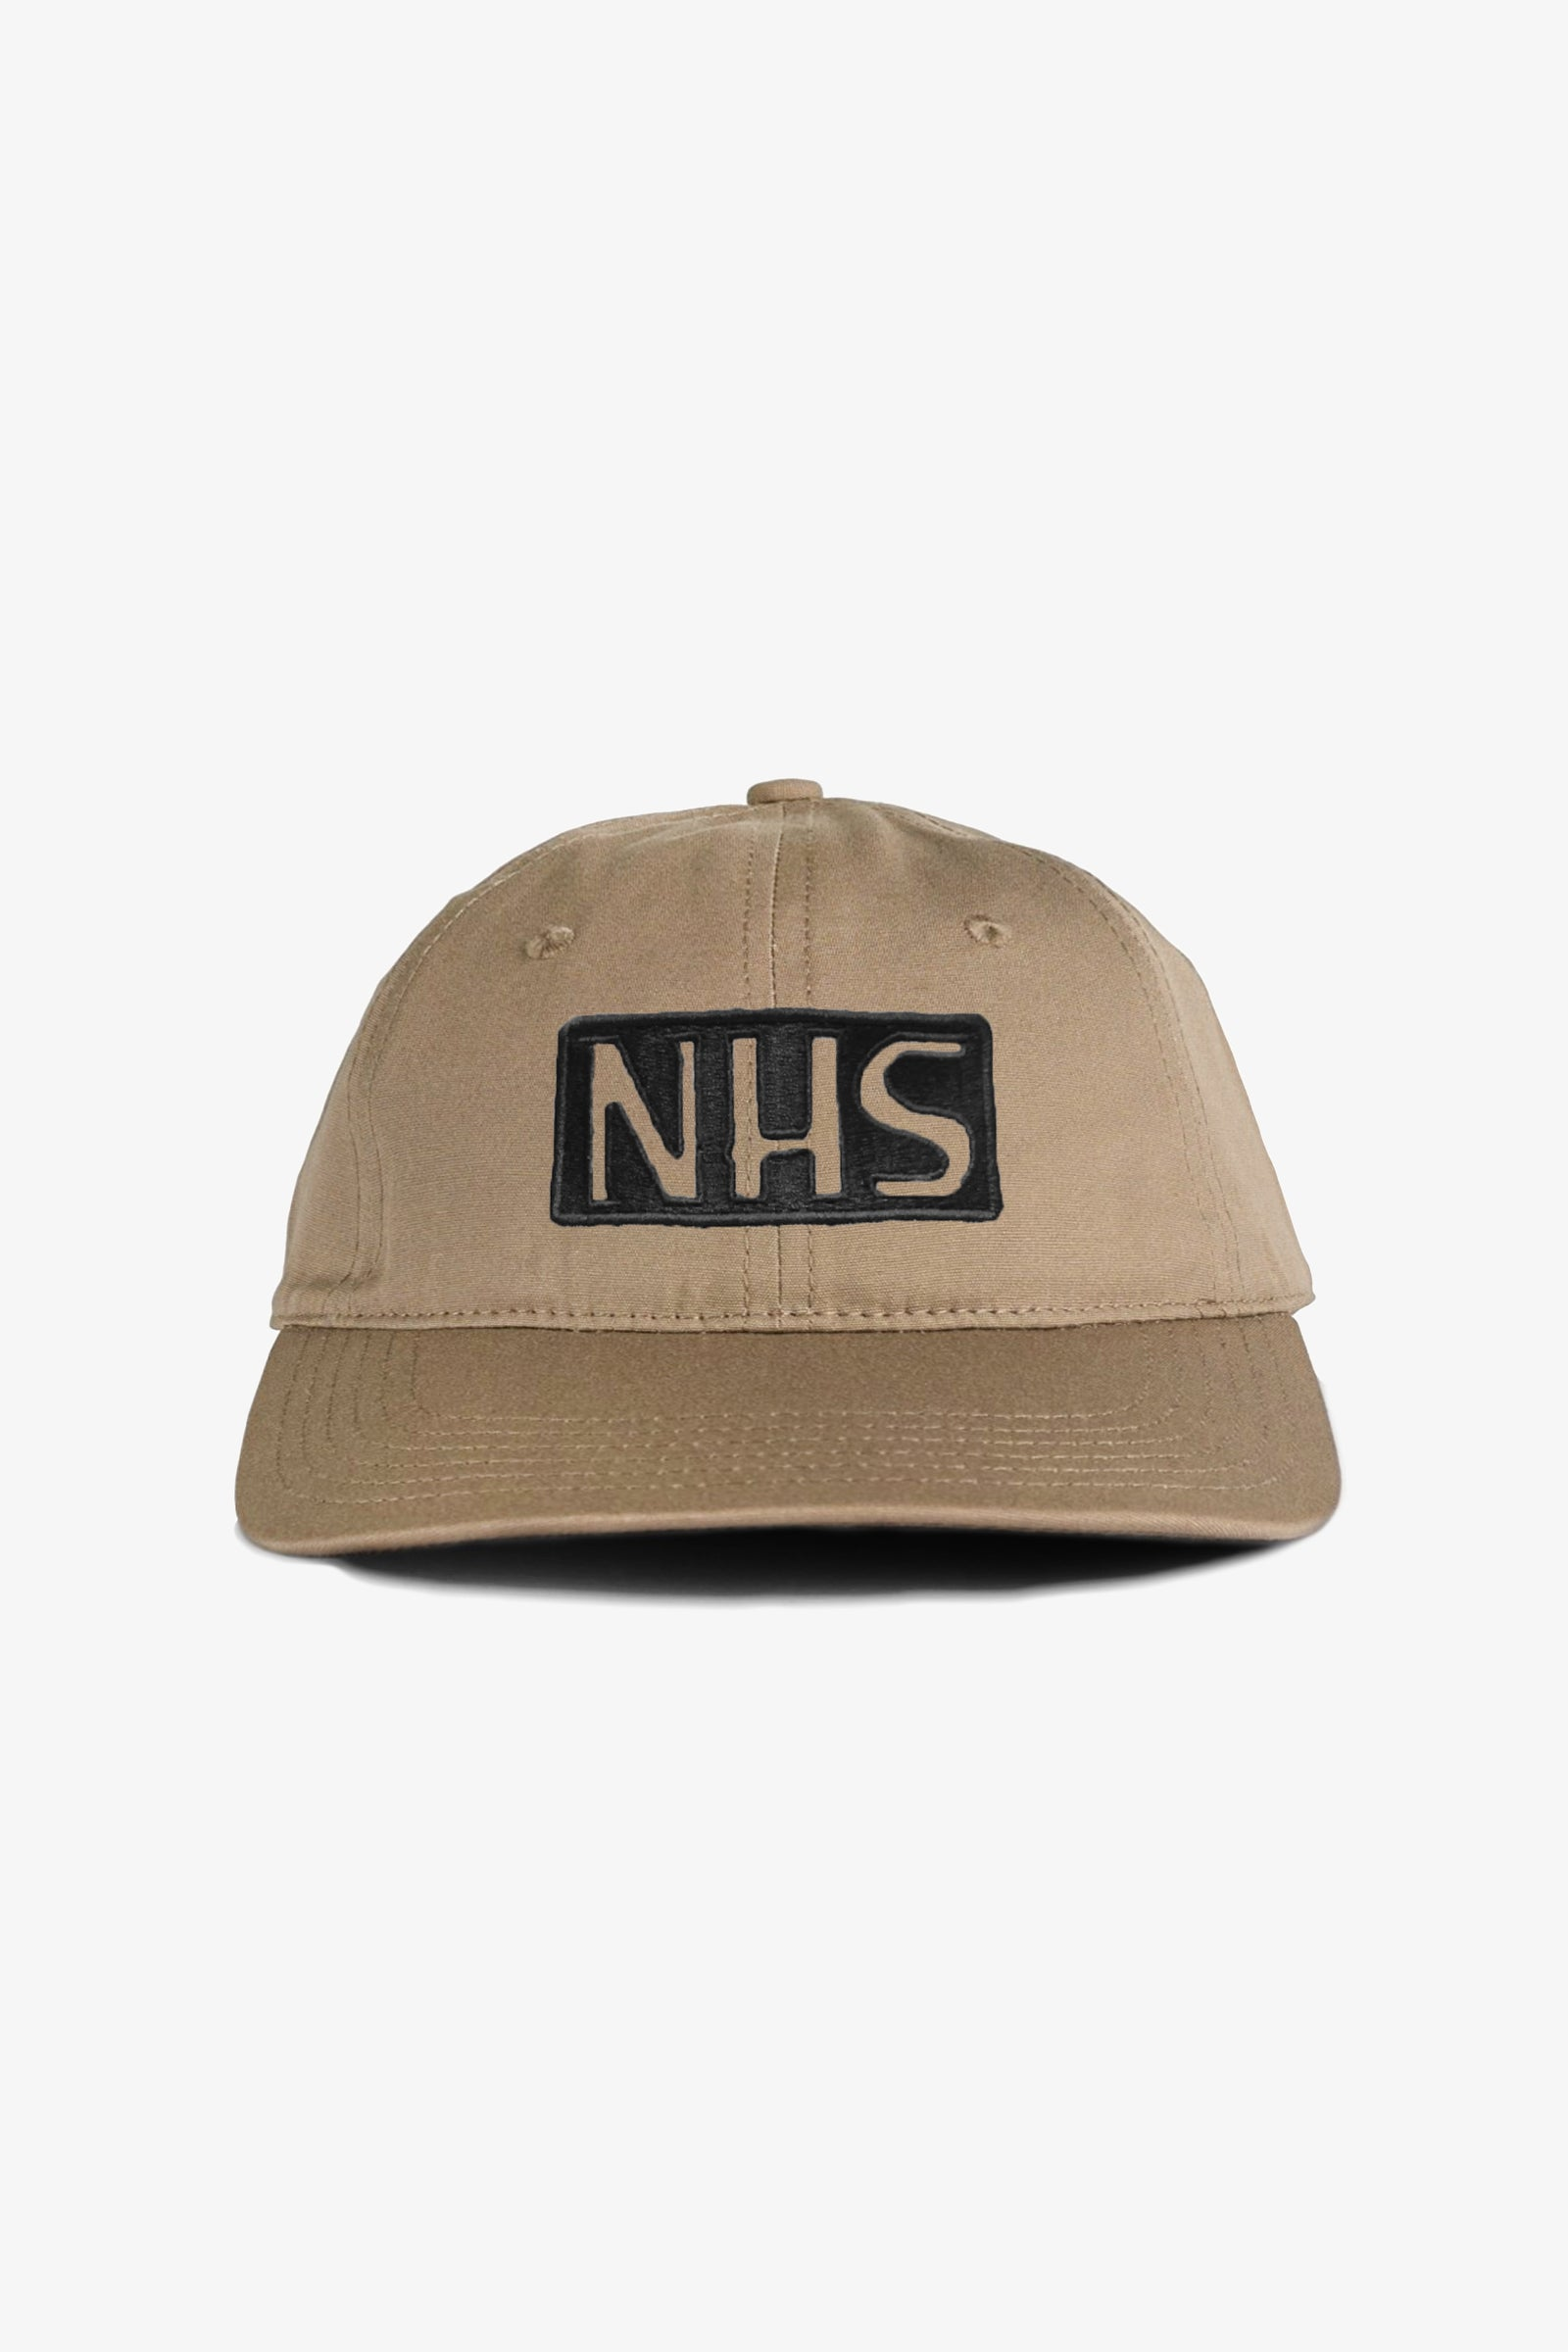 Blacksmith - NHS Fundraiser Cap - Brown